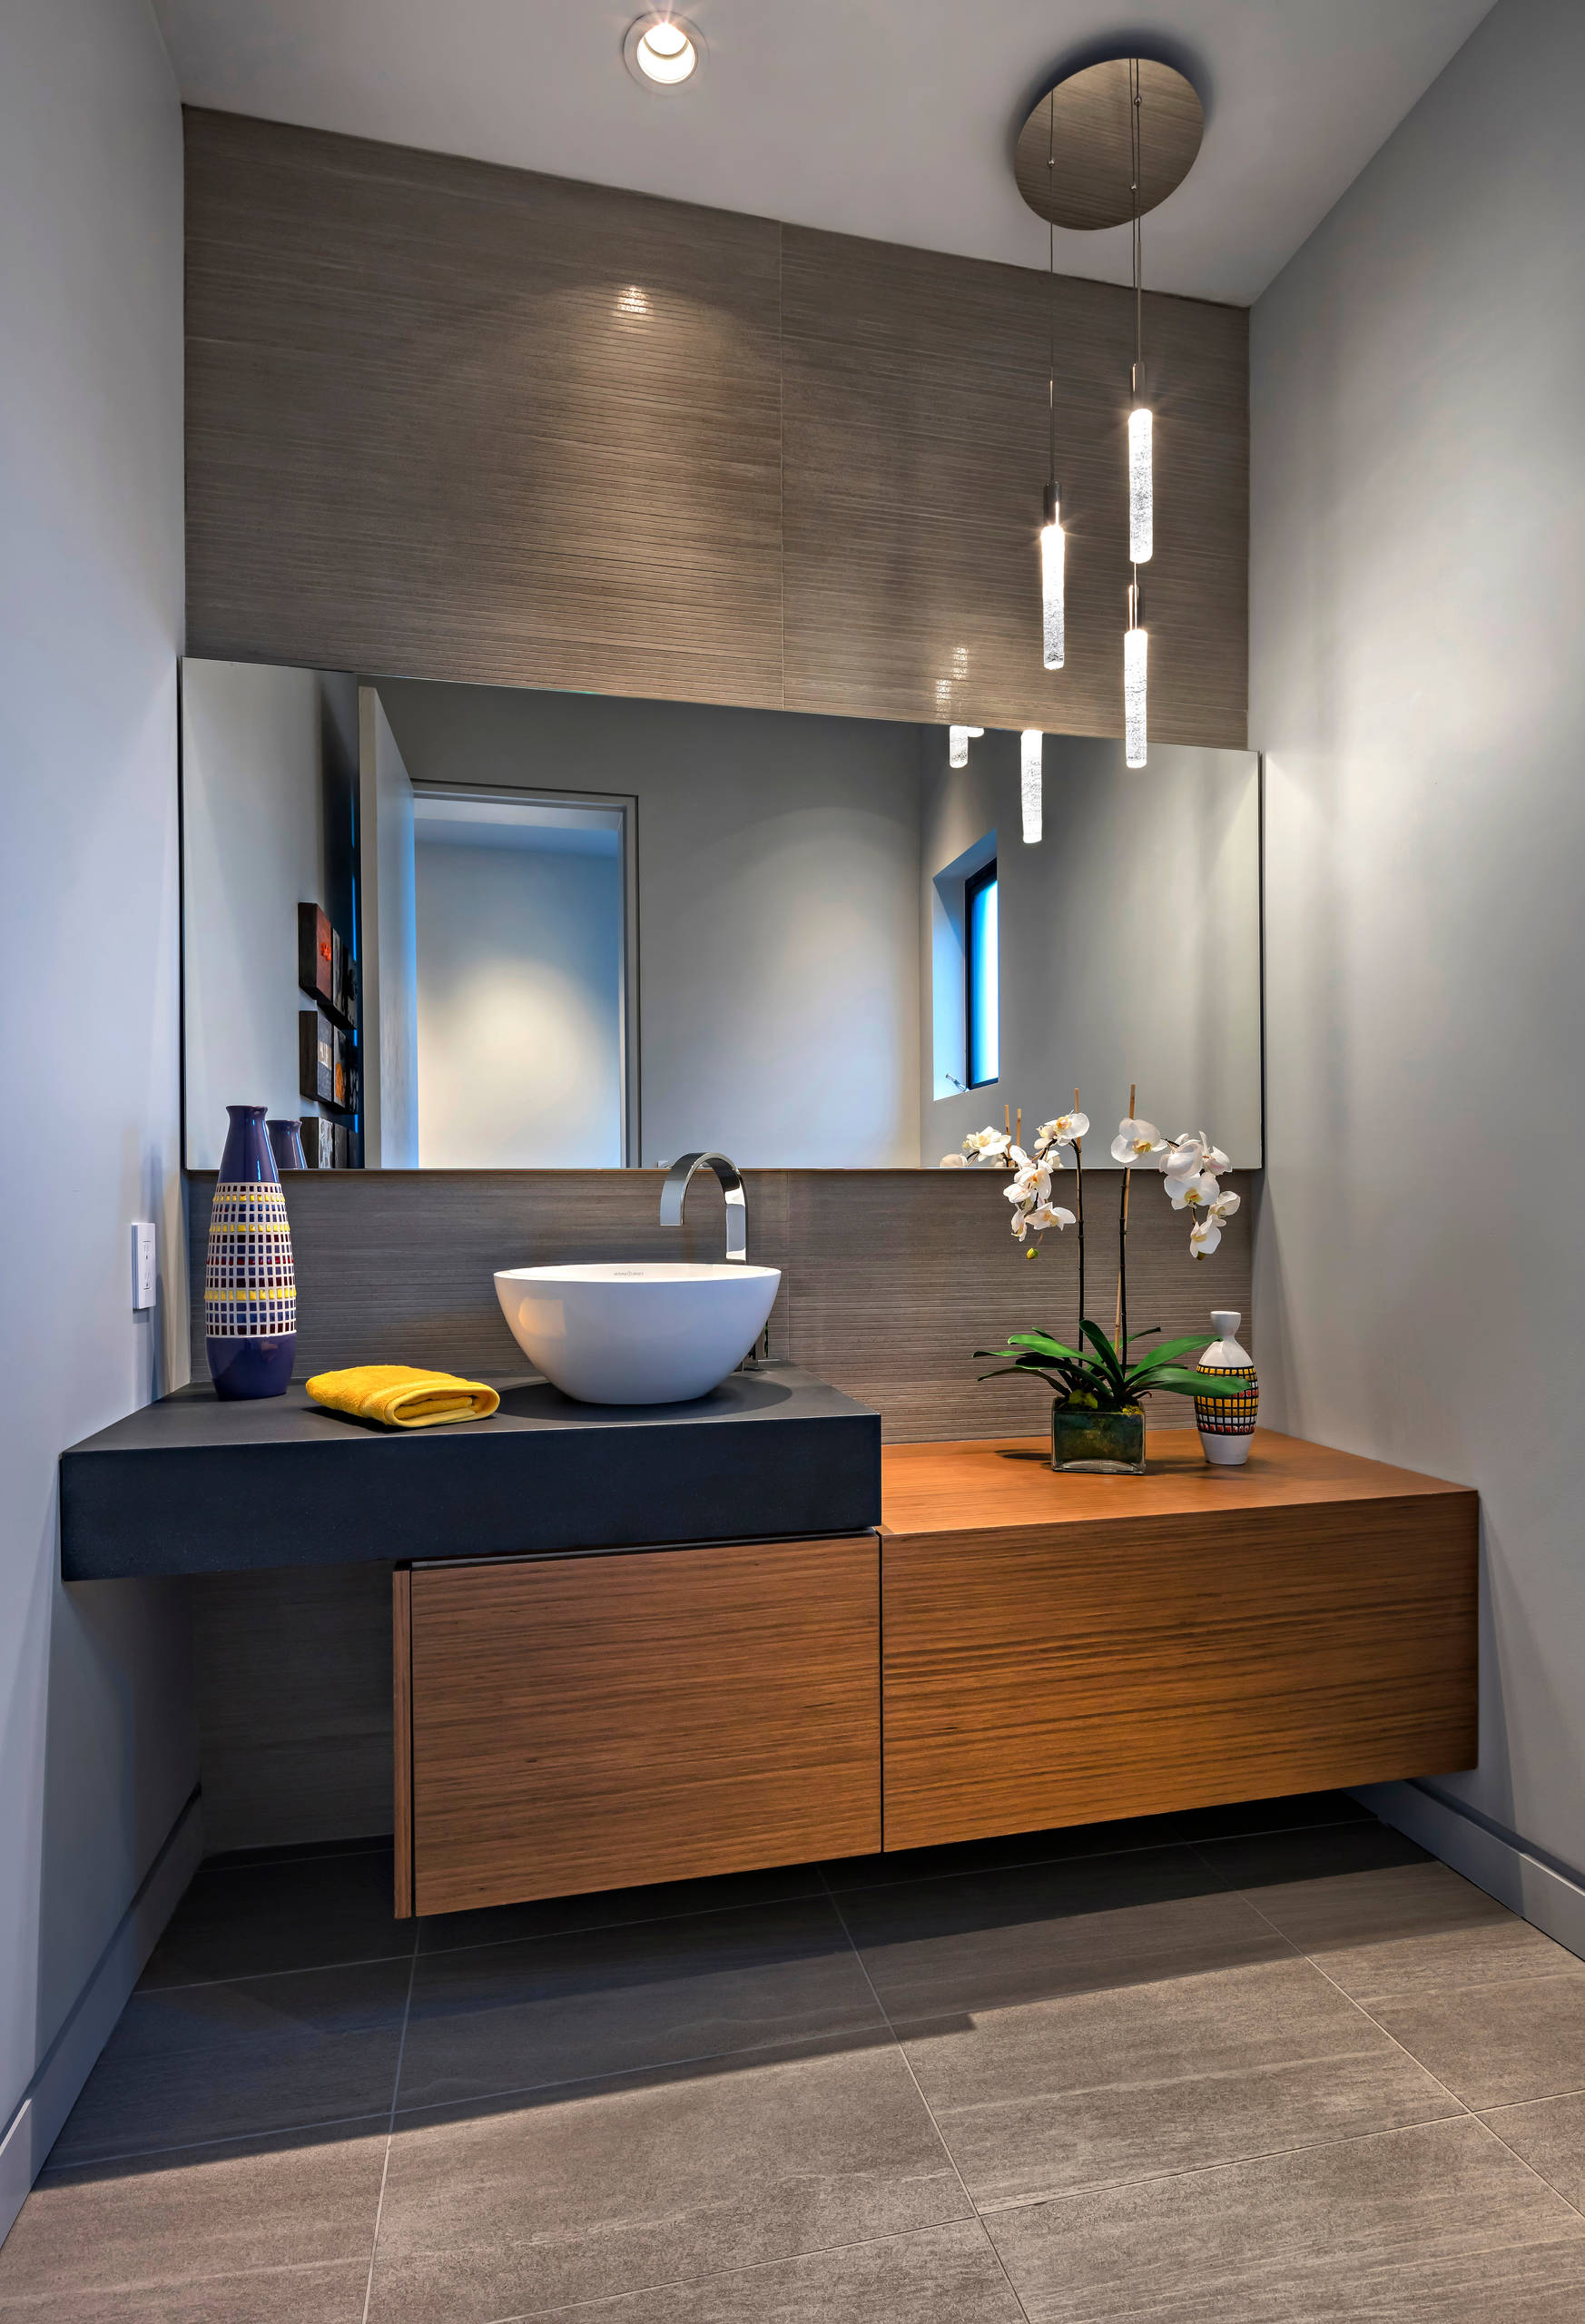 75 Beautiful Large Powder Room Pictures Ideas February 2021 Houzz